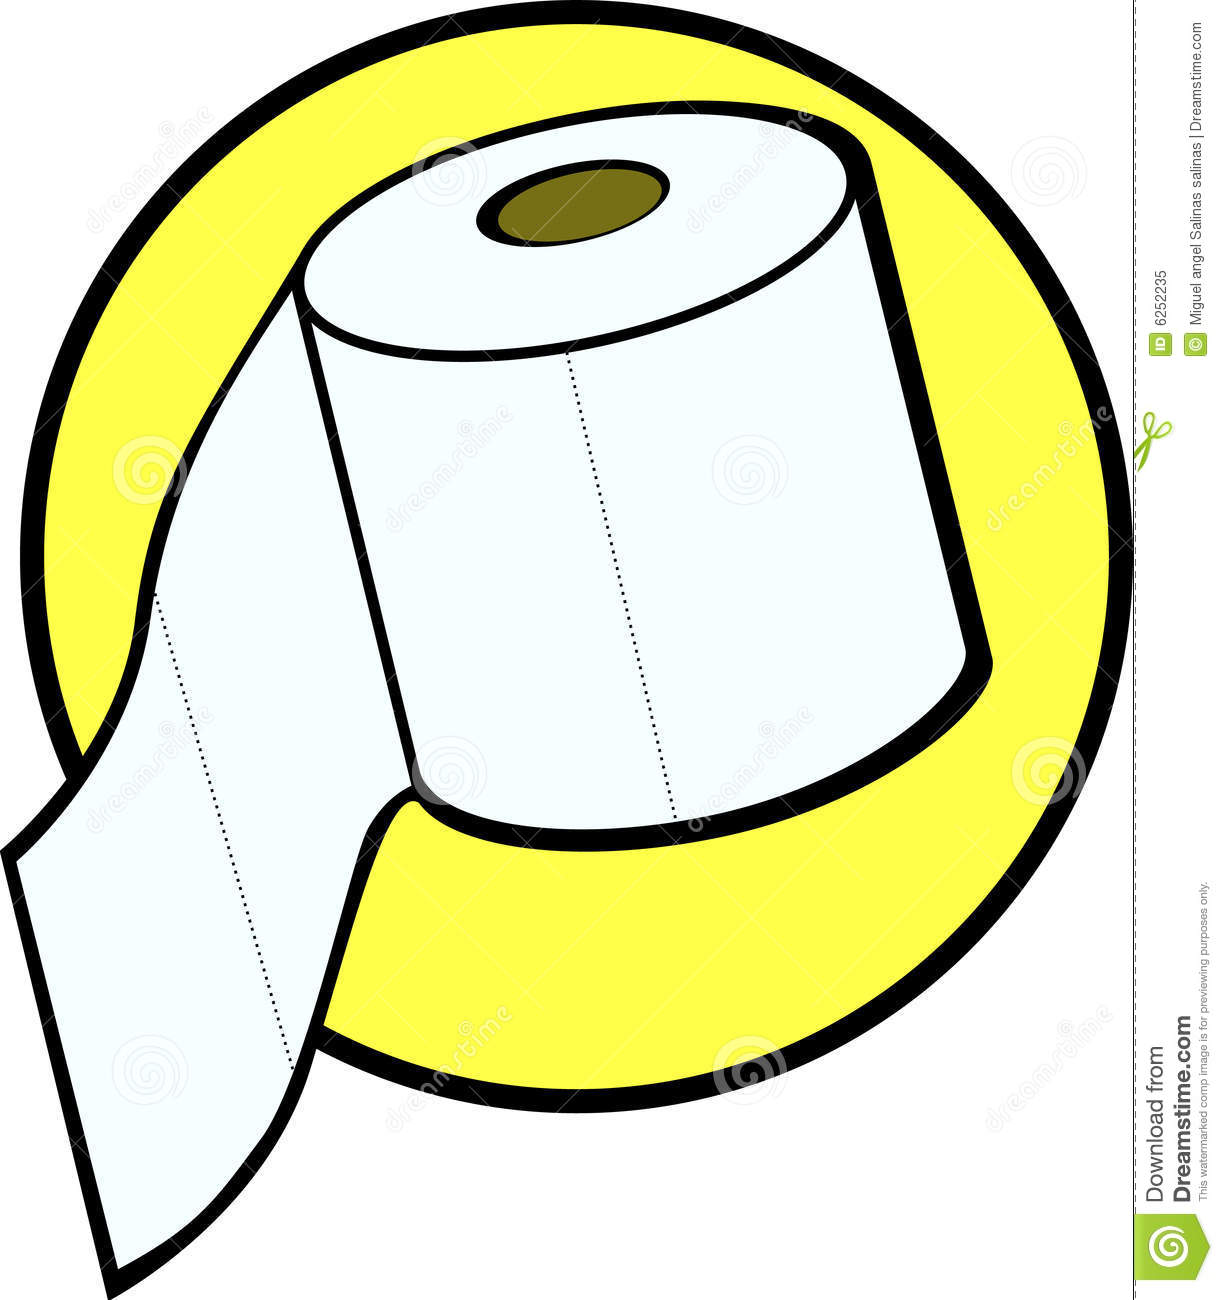 Toilet Clipart Free | Free download best Toilet Clipart Free on ...